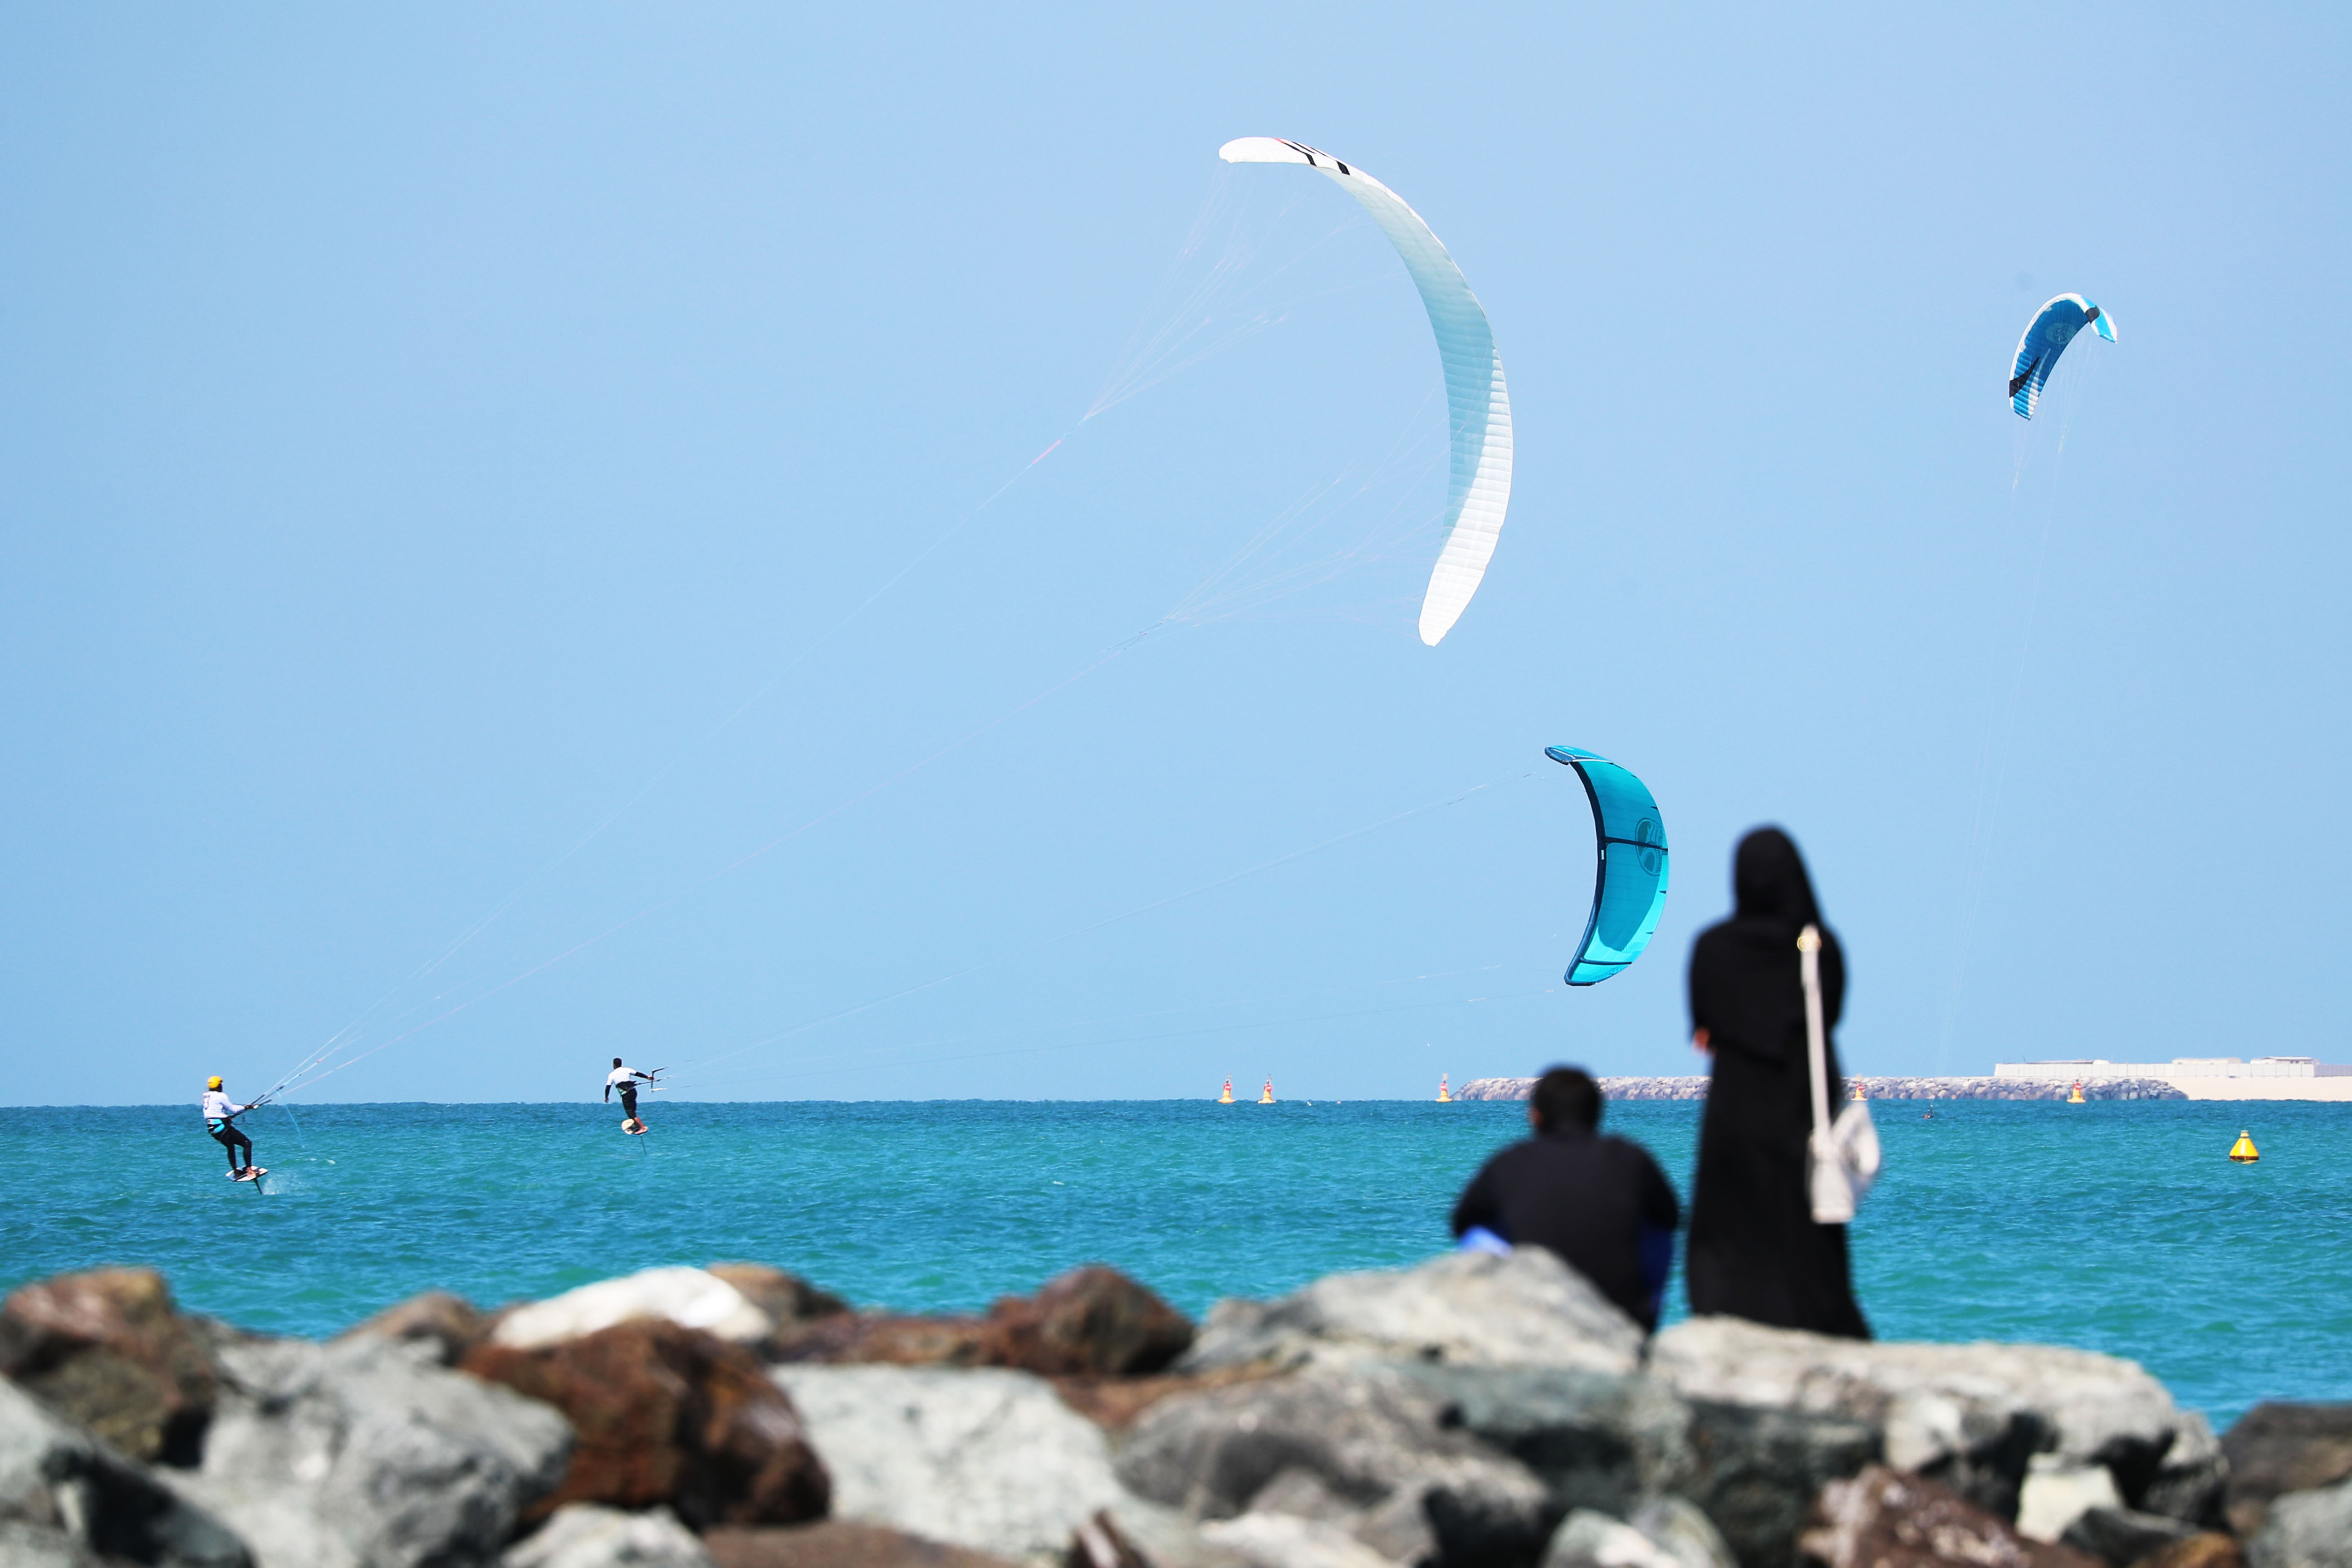 Full Day of Watersports Activity in Dubai Beaches